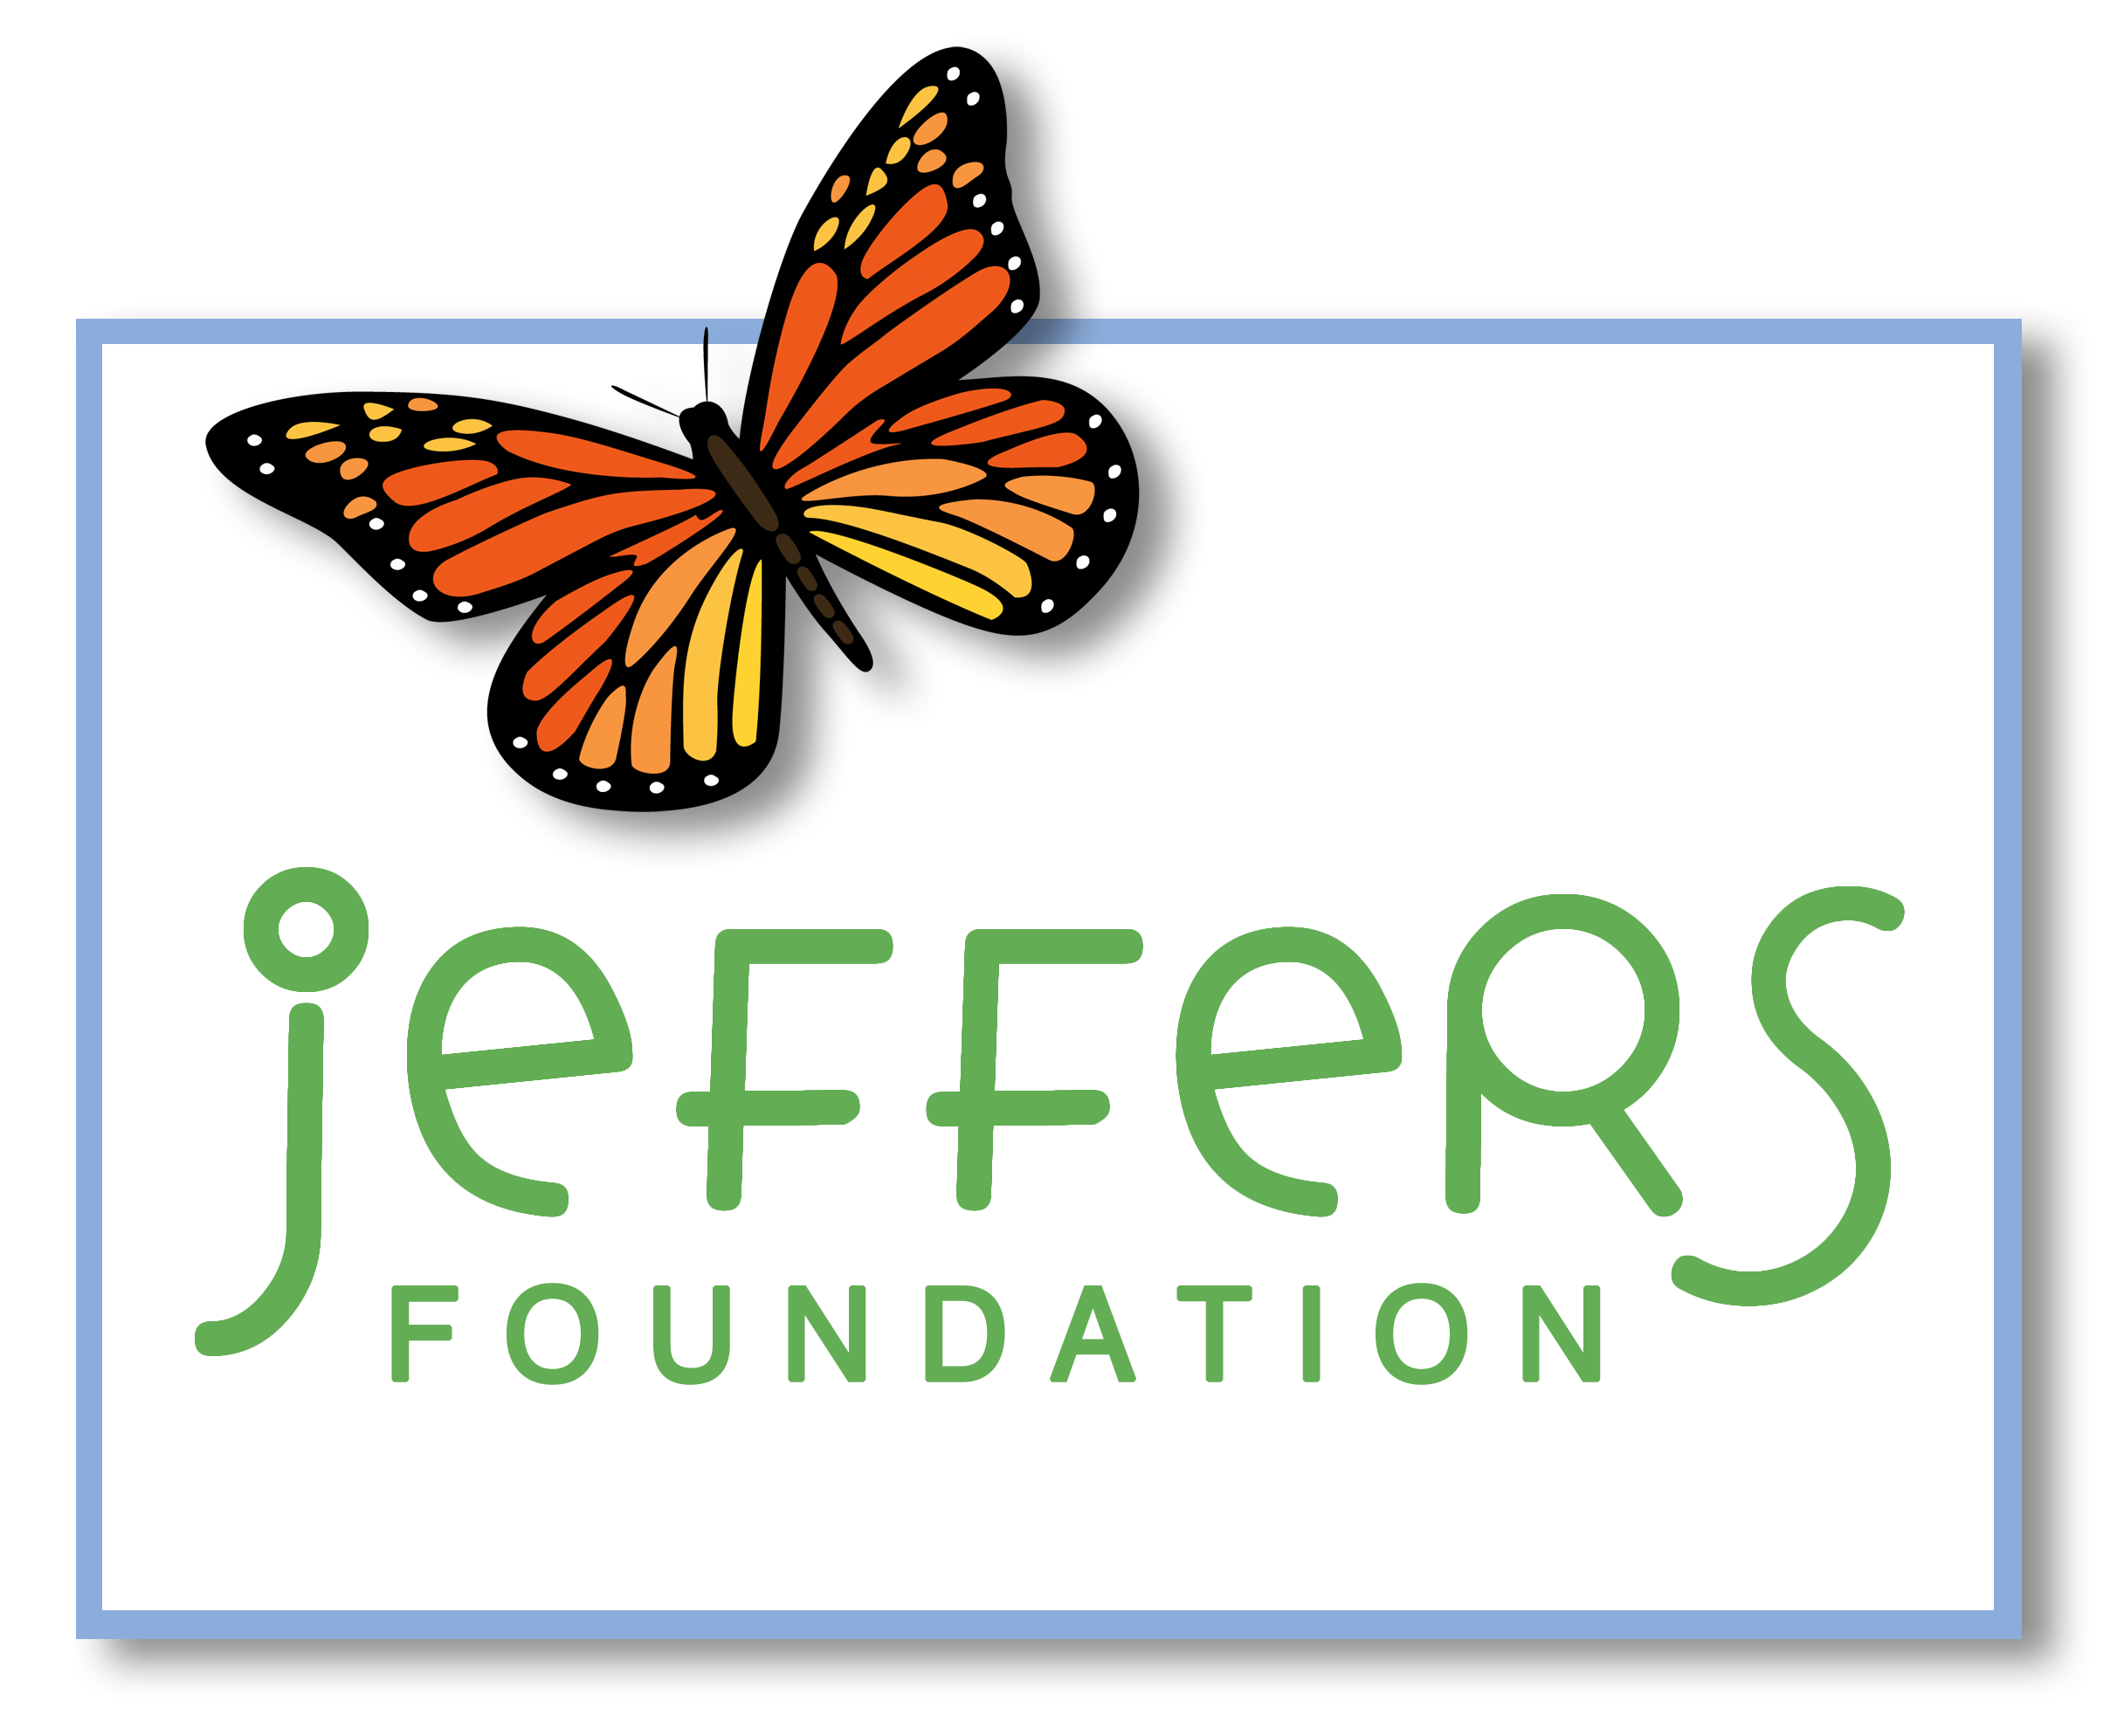 Jeffers Foundation